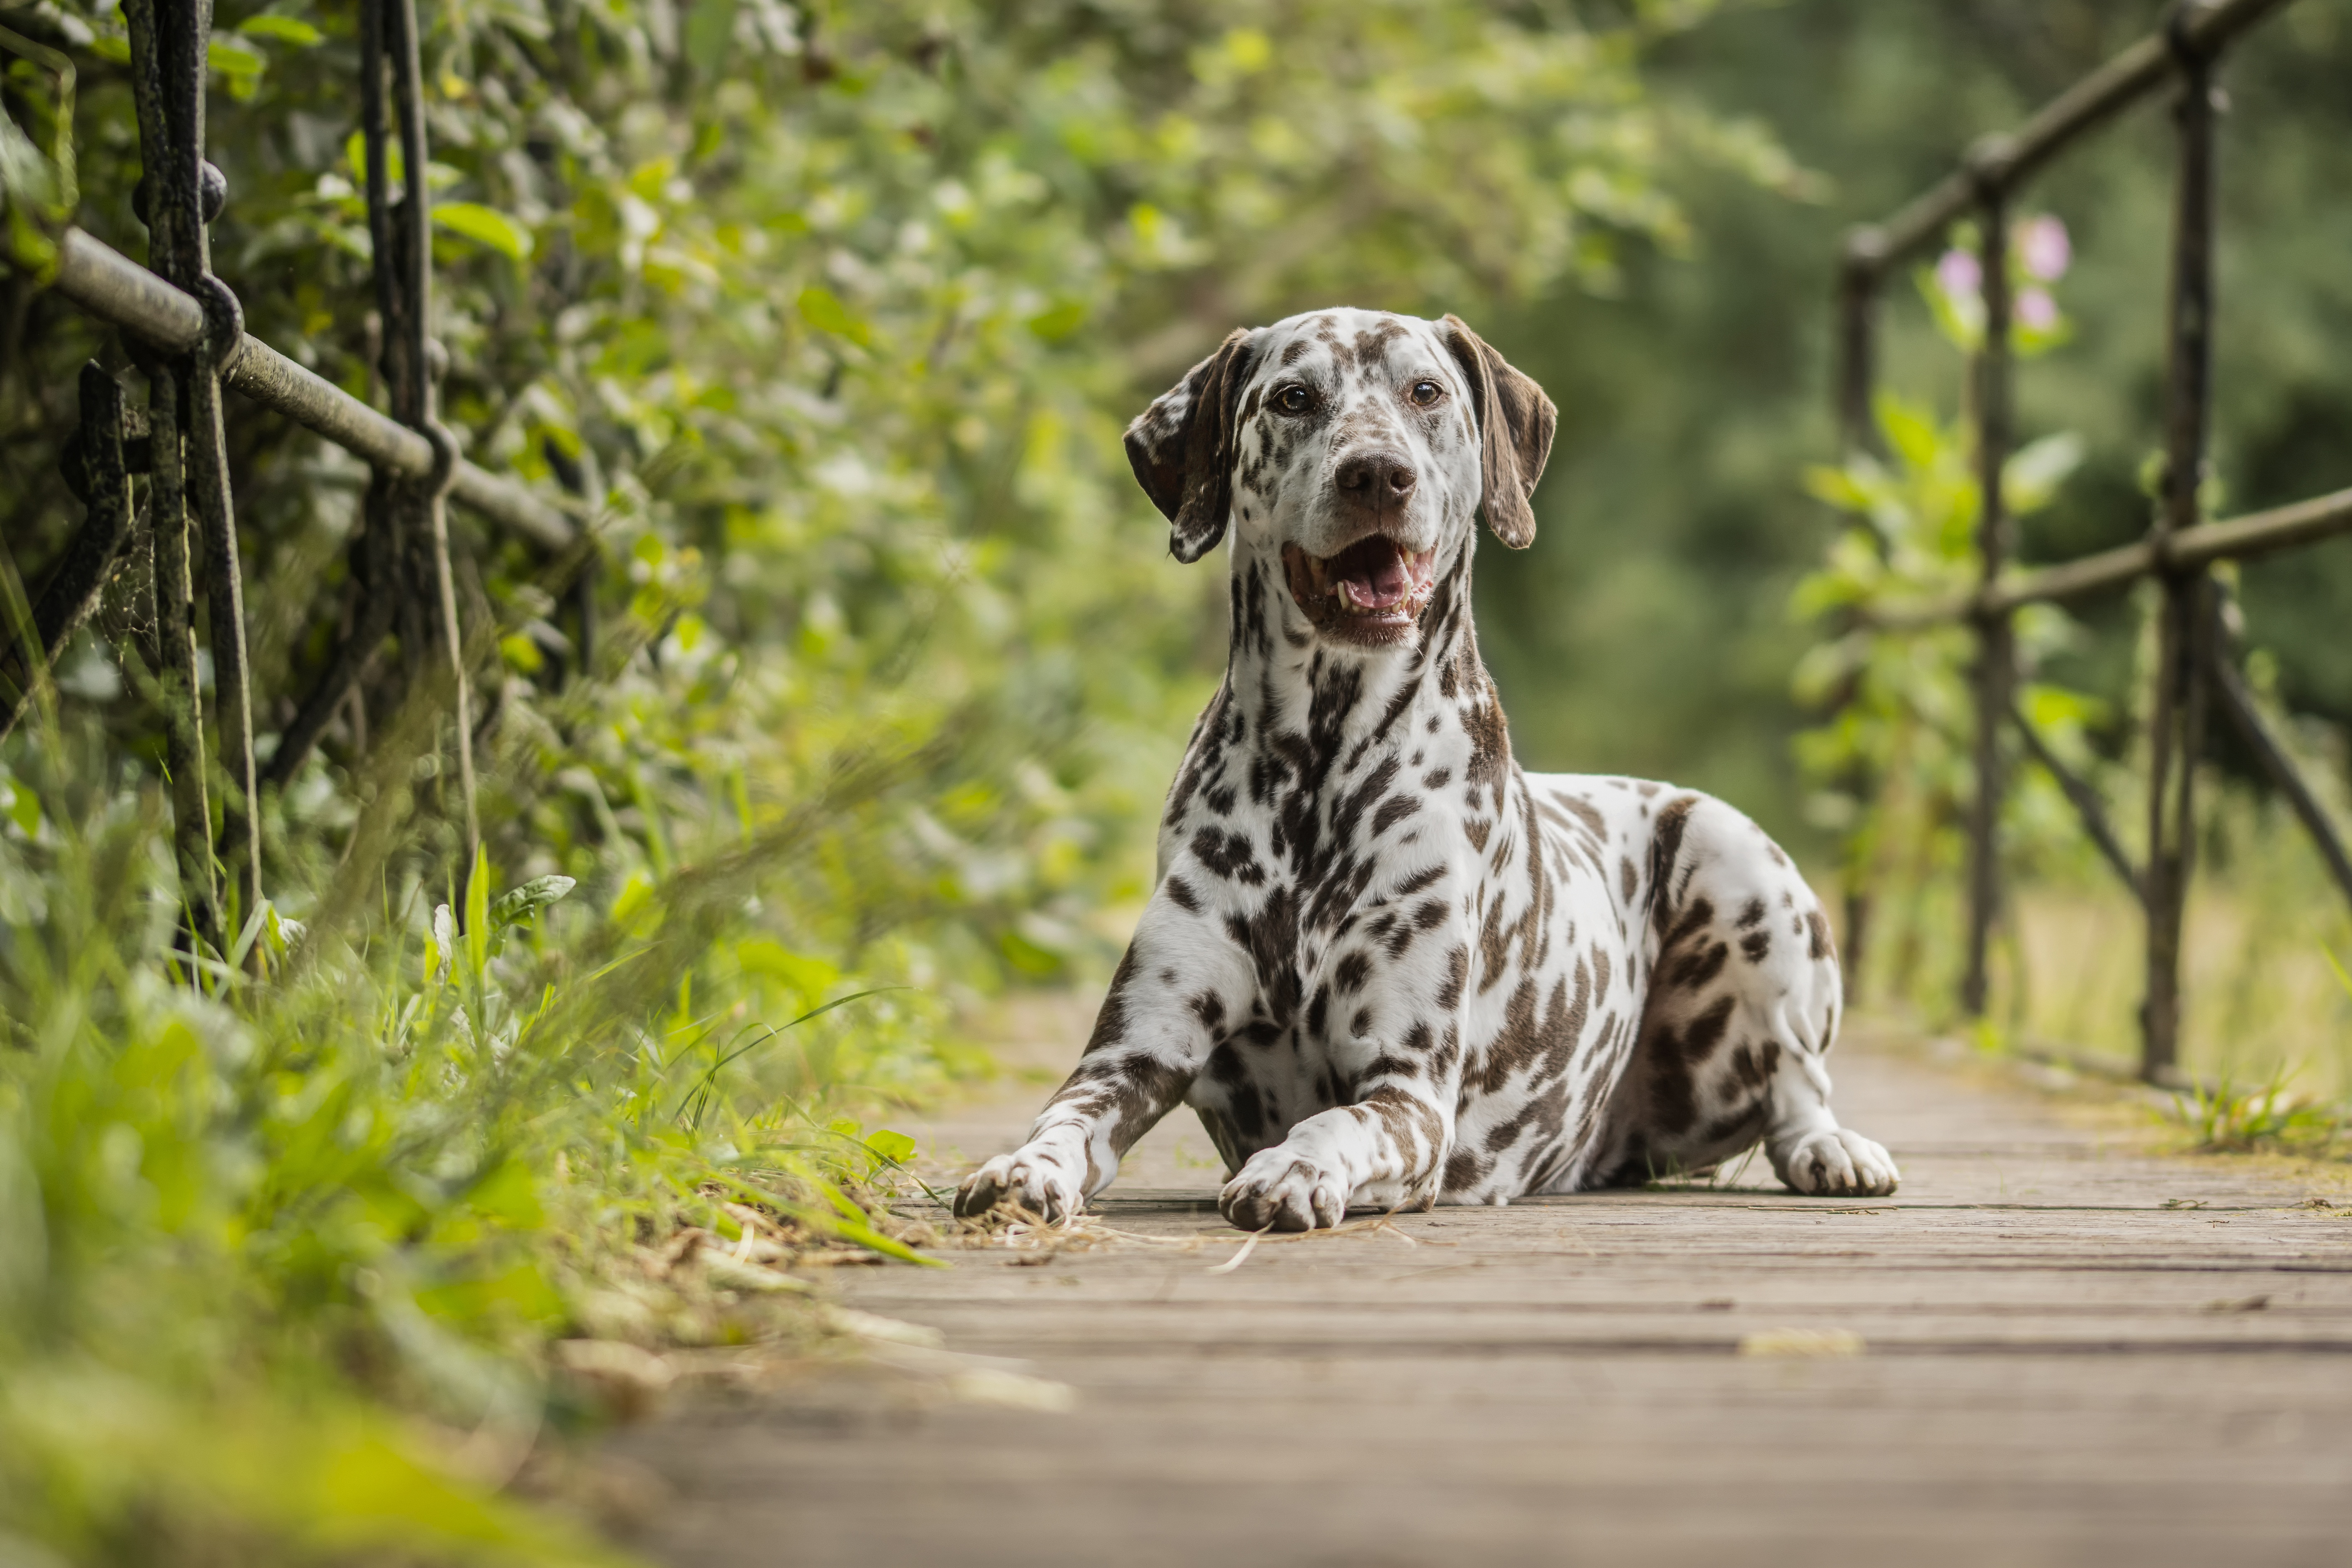 Liver Spotted Dalmatian 5k Retina Ultra HD Wallpaper And Background